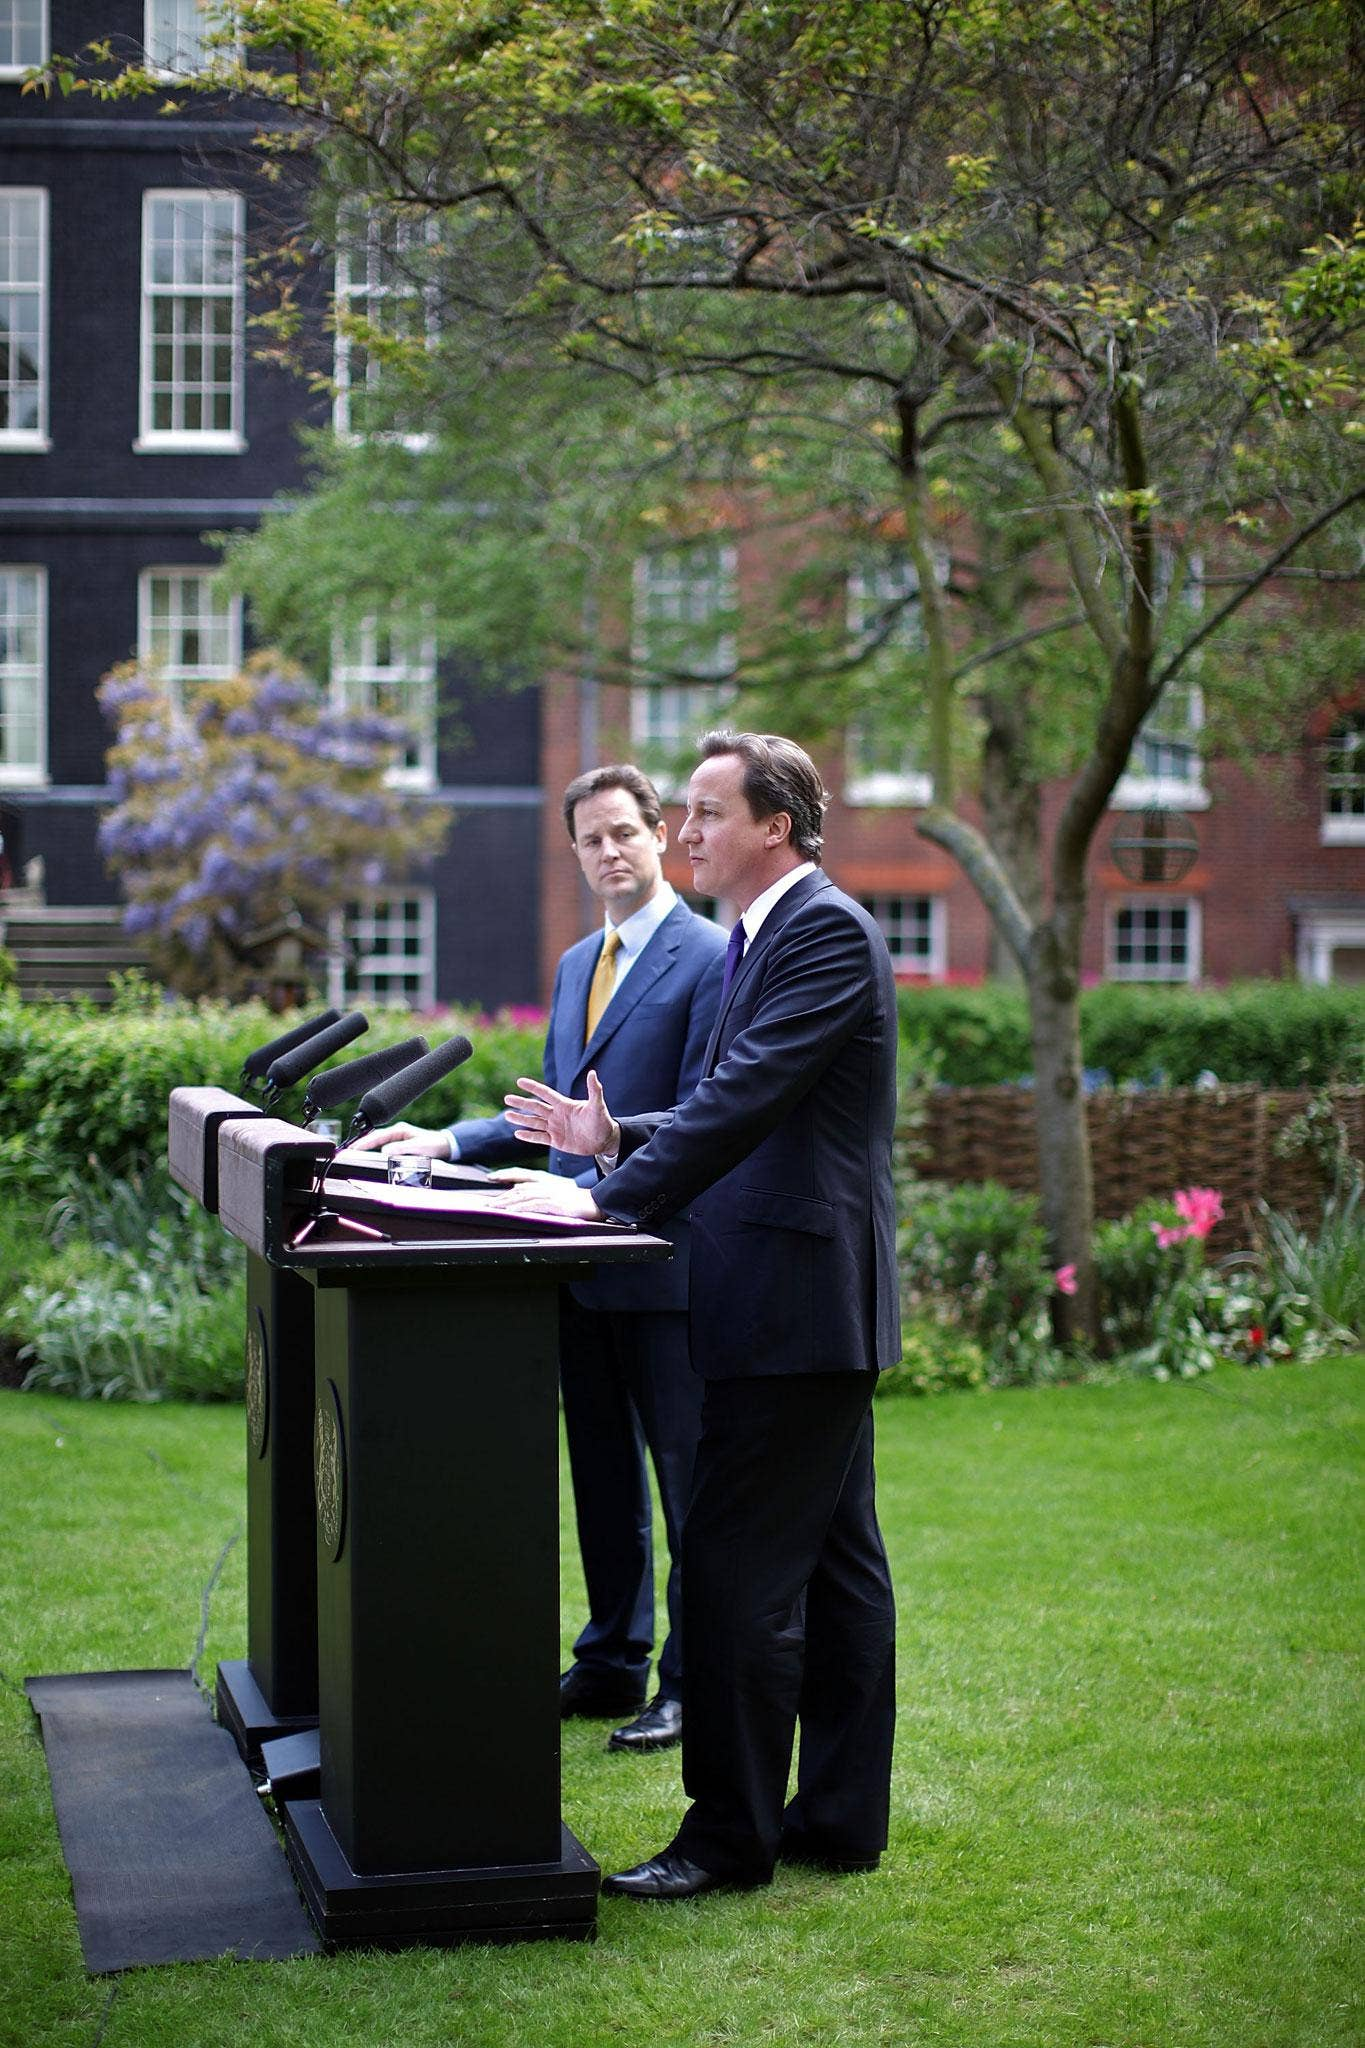 Clever student politicians? Nick Clegg and David Cameron in the Rose Garden at 10 Downing Street, London, 2010